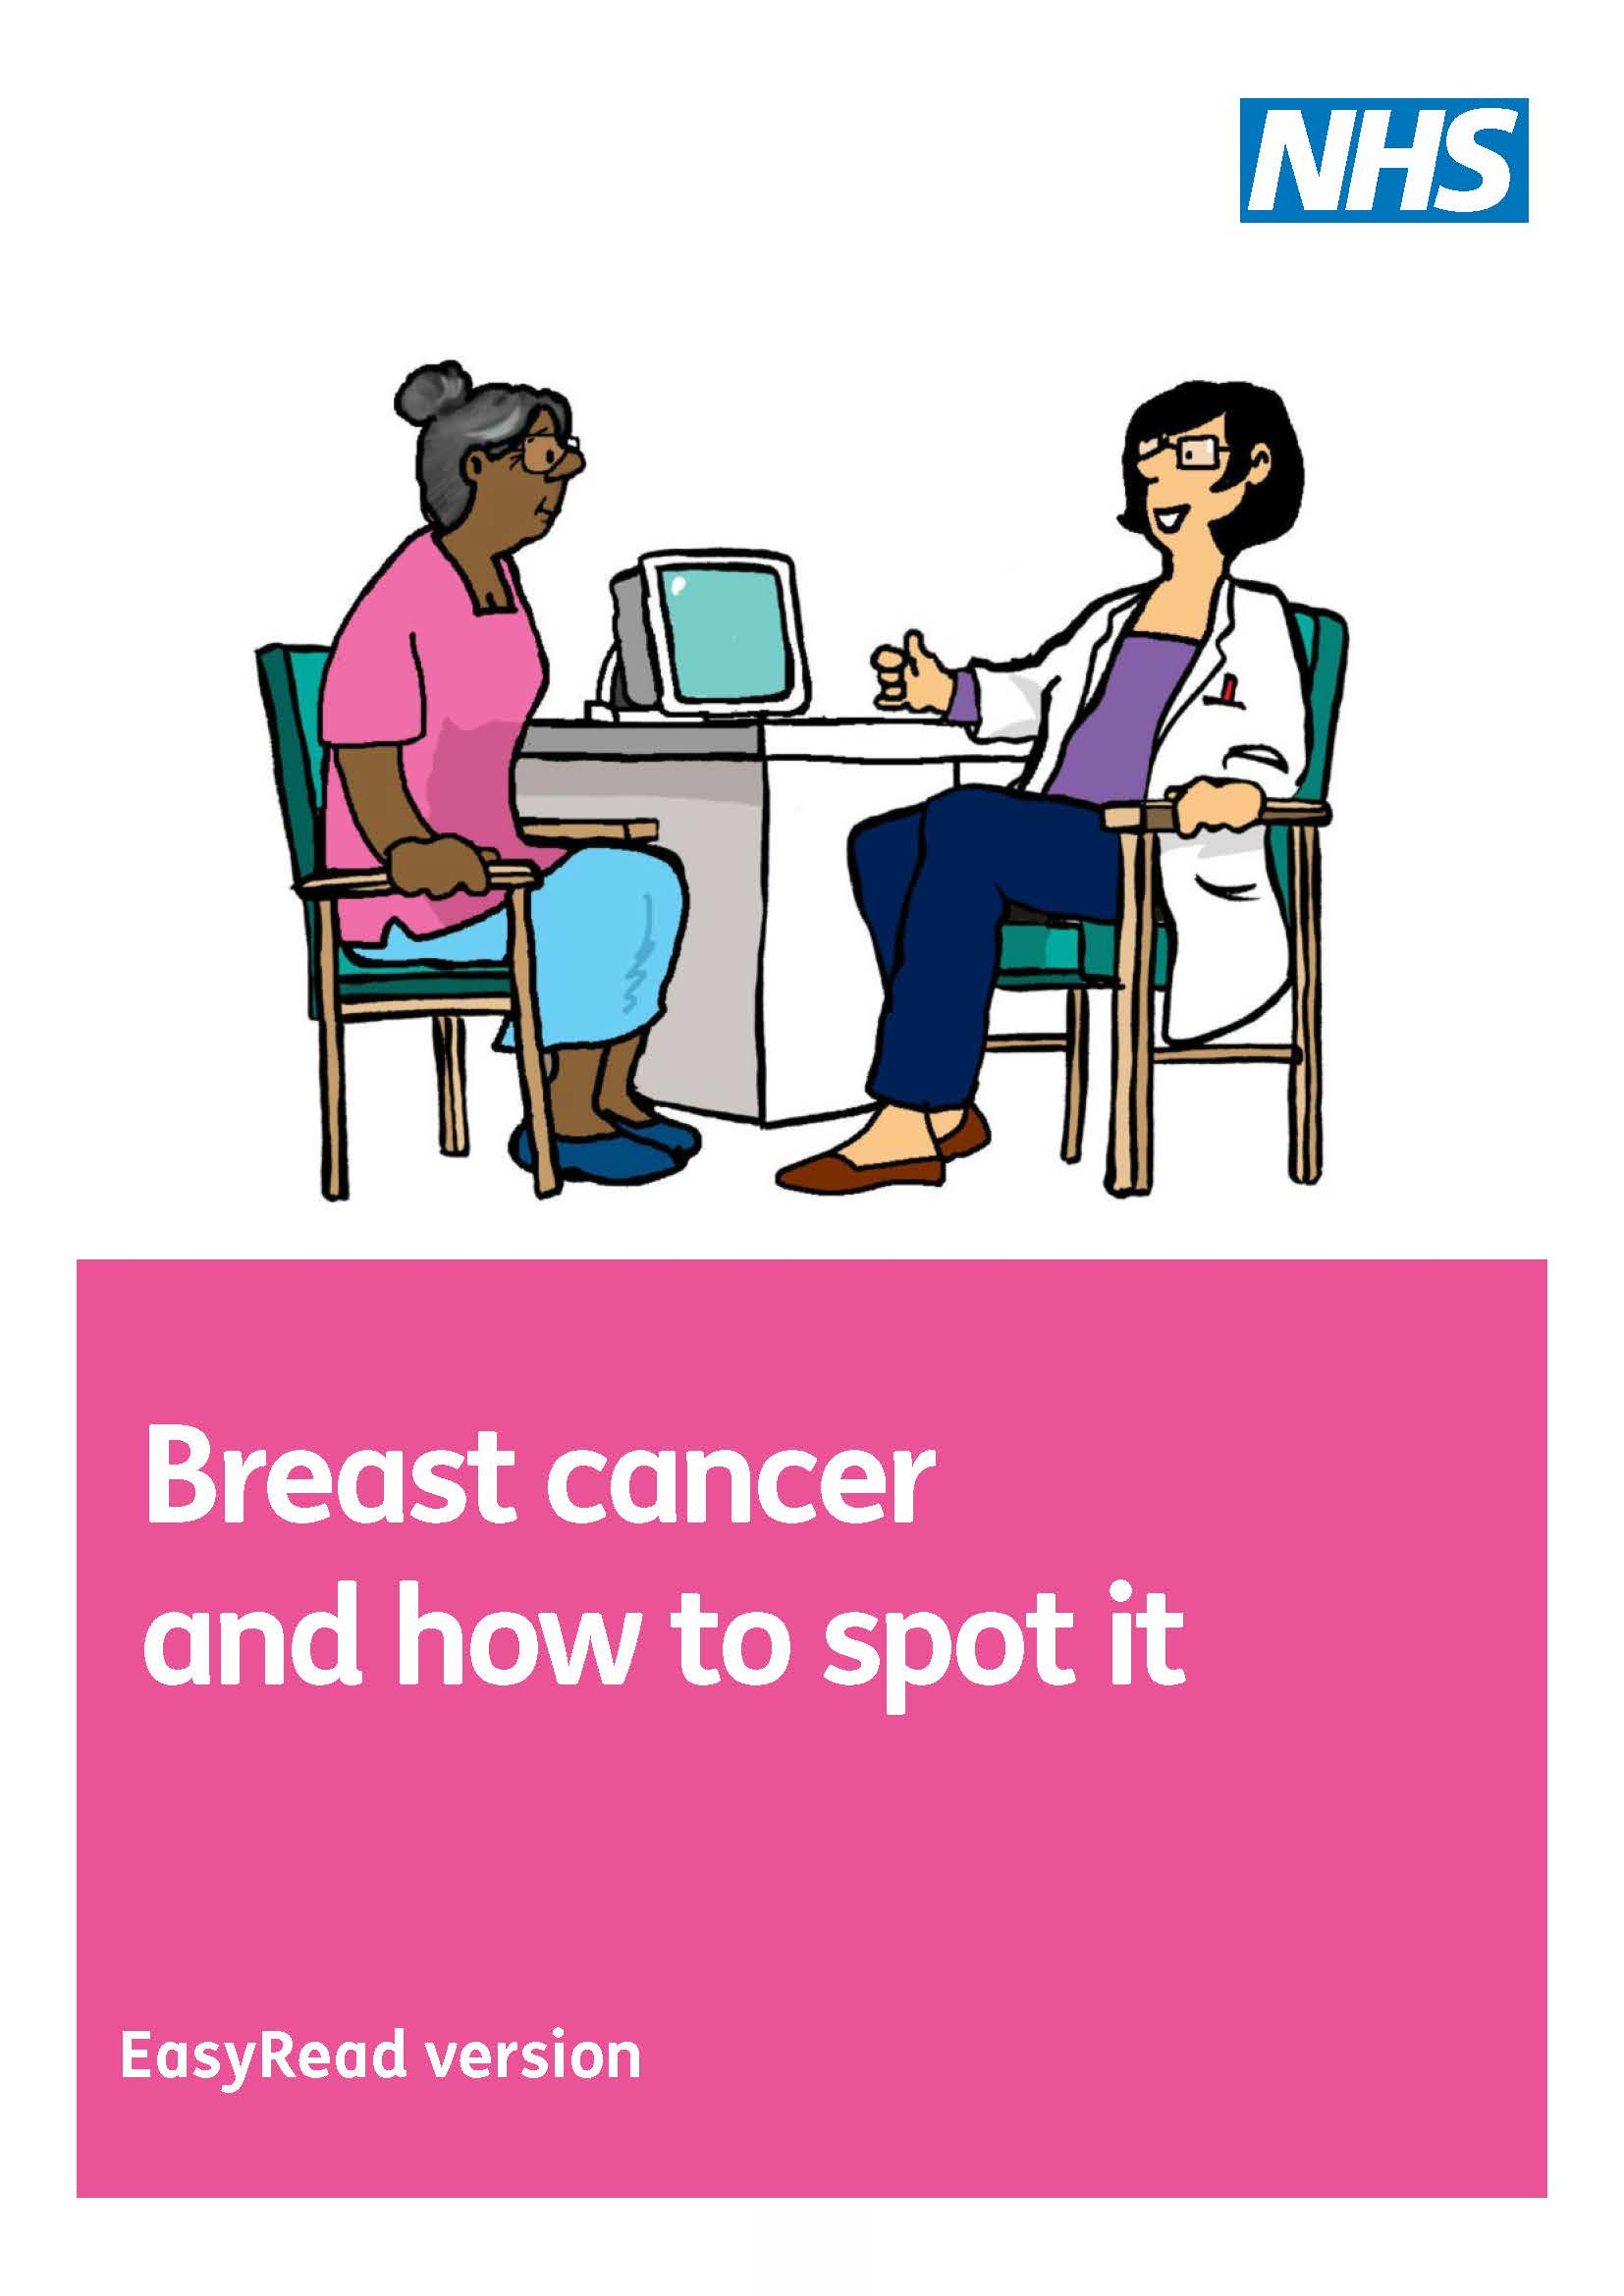 Breast cancer and how to spot it easy read